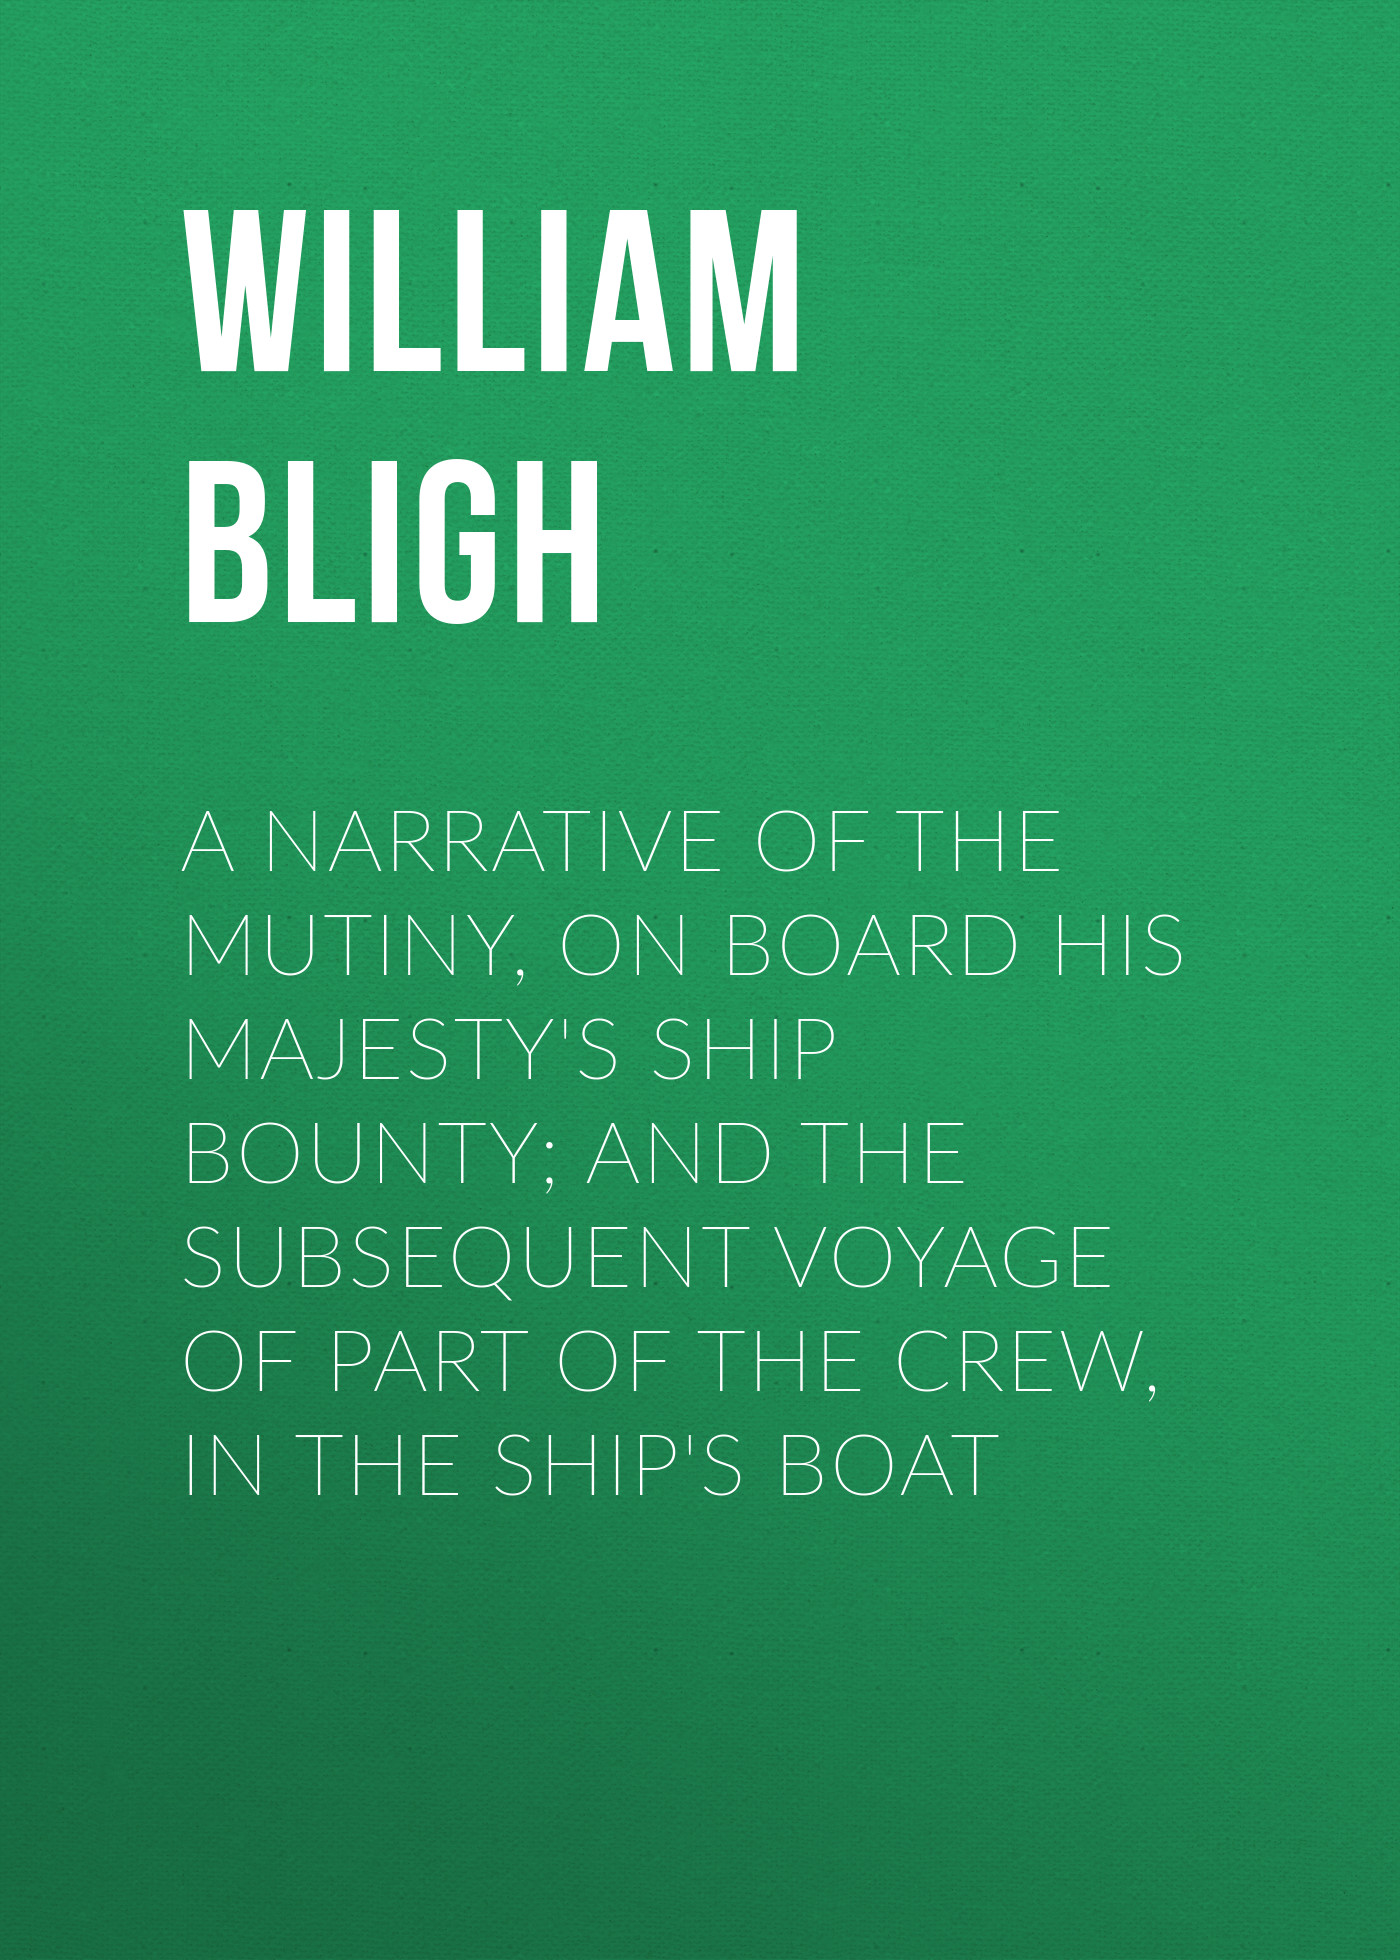 William Bligh A Narrative Of The Mutiny, On Board His Majesty's Ship Bounty; And The Subsequent Voyage Of Part Of The Crew, In The Ship's Boat